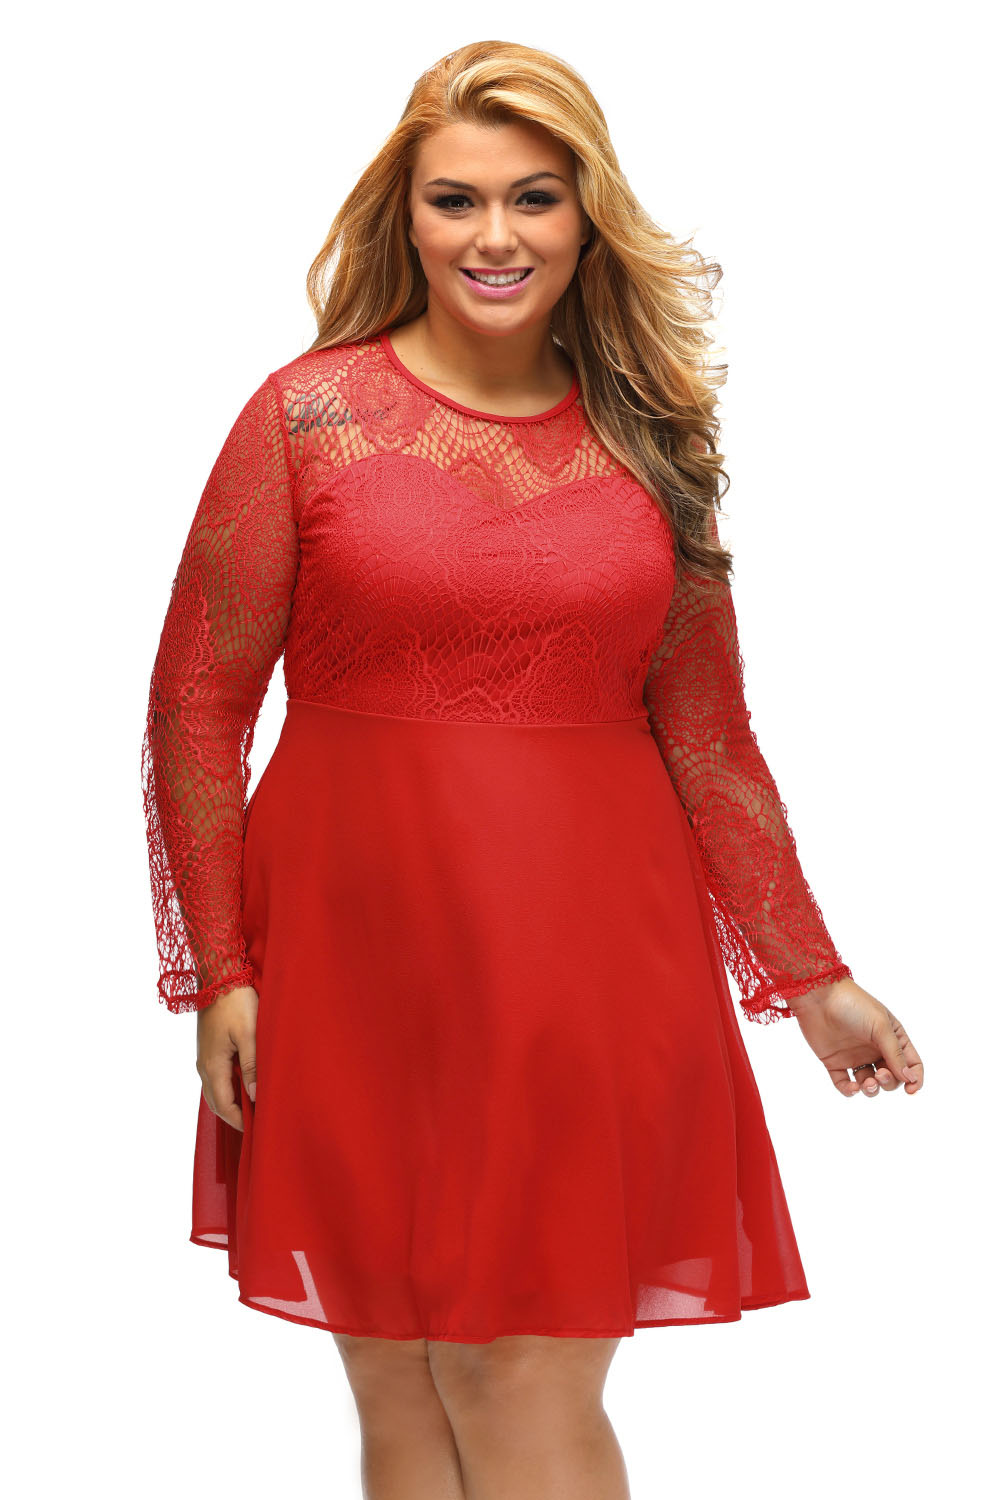 Boohoo Plus Size Lace Top Skater Dress Little Black Long Sleeve